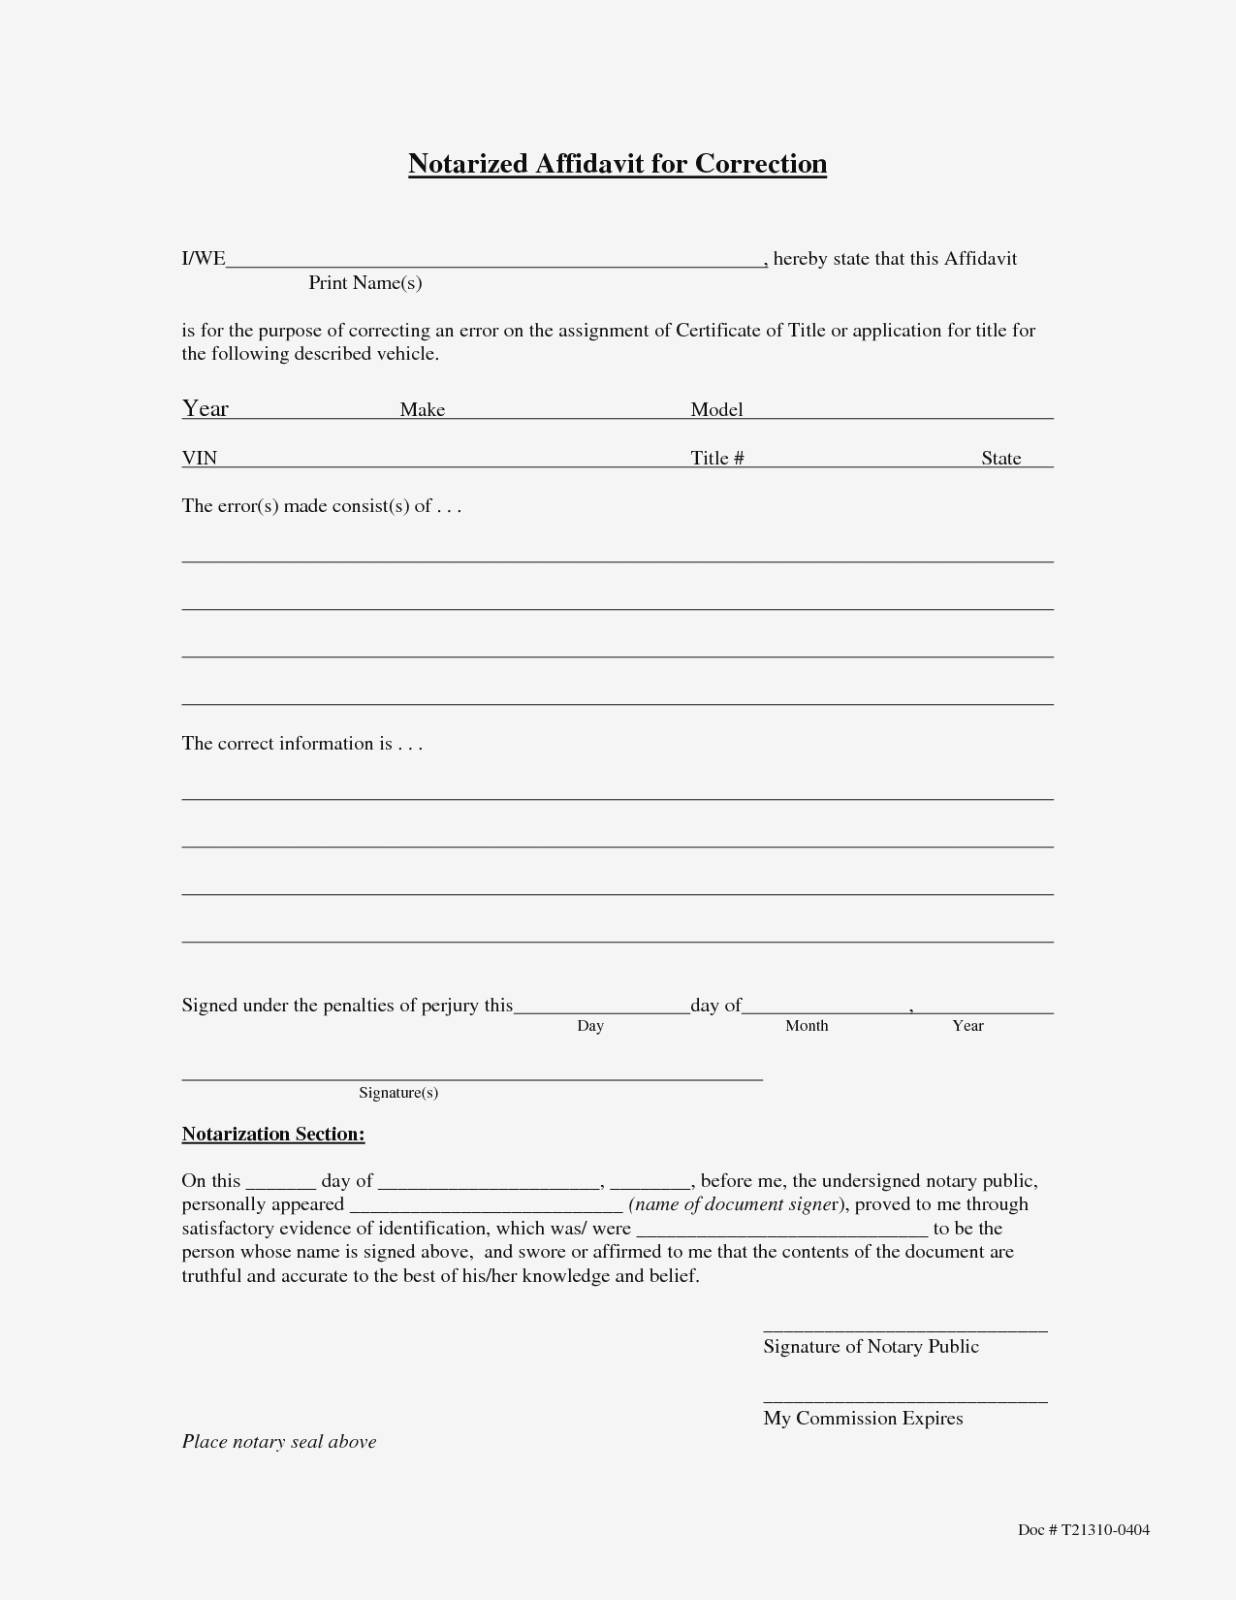 Notarized Affidavit Form